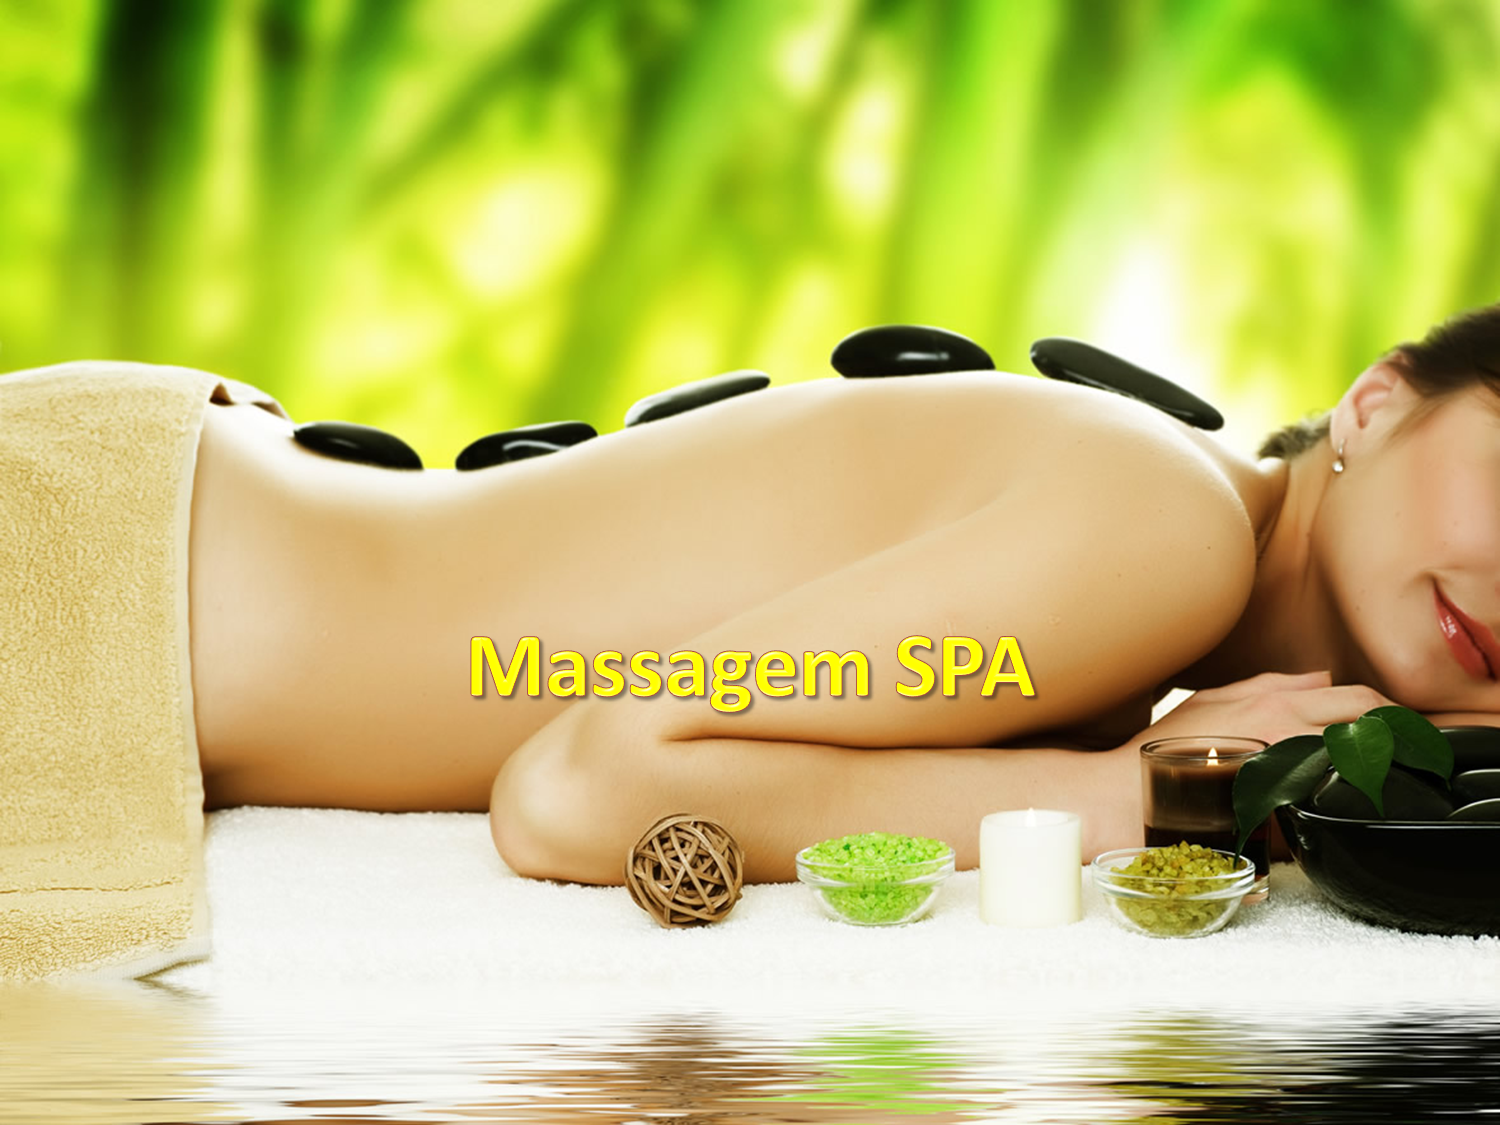 Massagem SPA